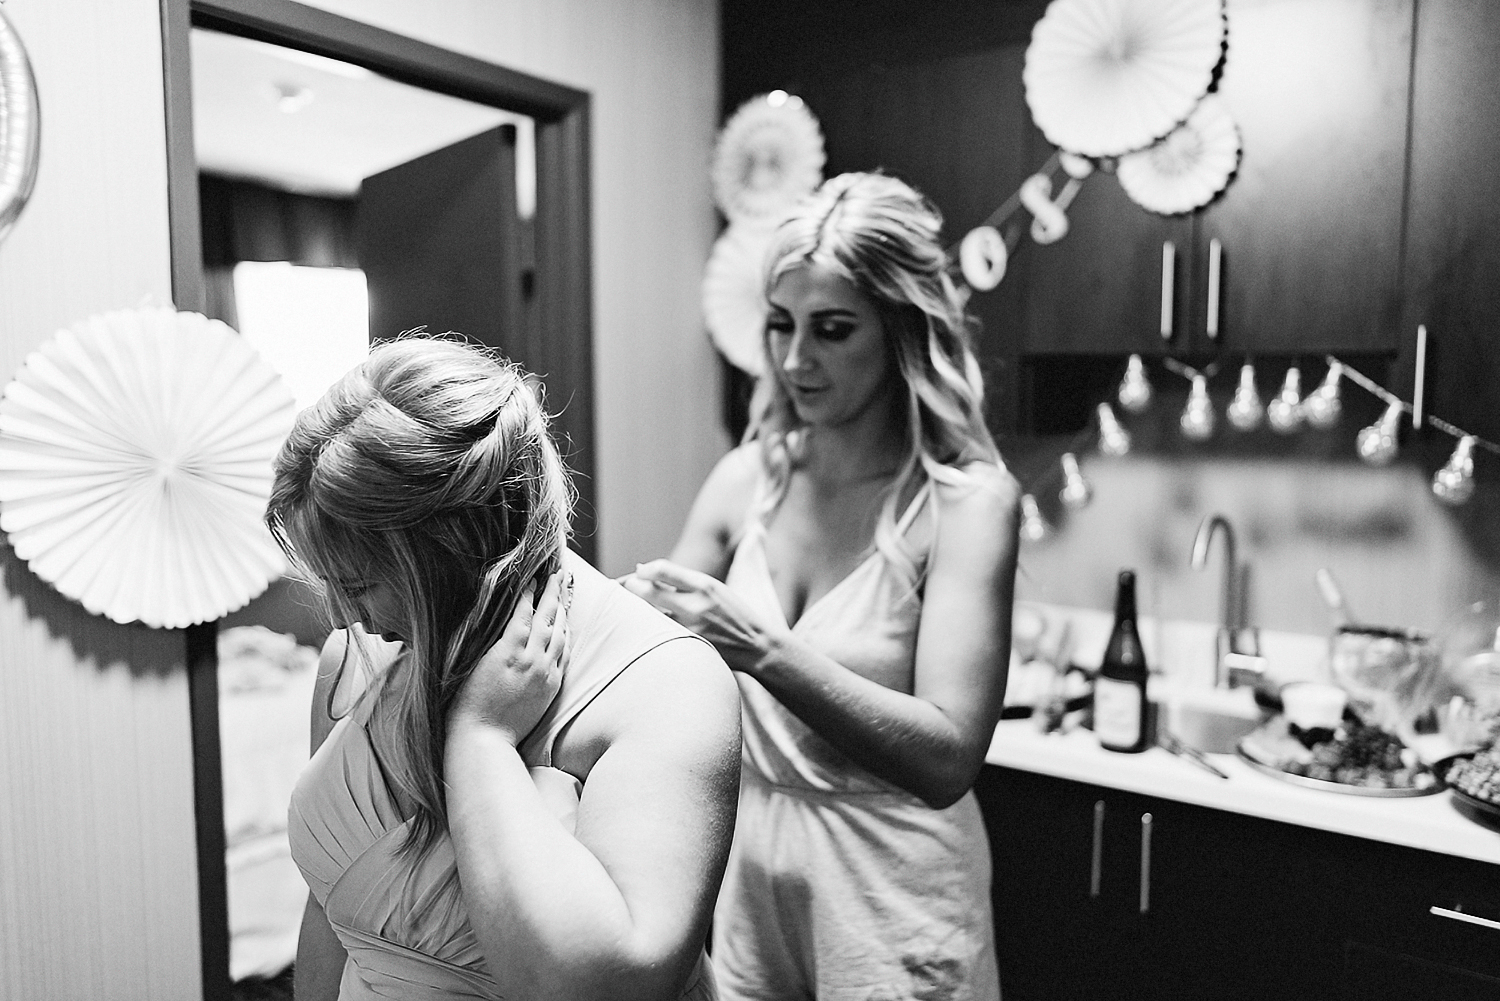 dowswell-barn-wedding-beaverton-best-wedding-photographers-toronto-moody-style-candid-photojounalistic-approach-intimate-vintage-farm-wedding-foggy-morning-details-bride-getting-ready-room-bridesmaid-and-bride-sisters.jpg